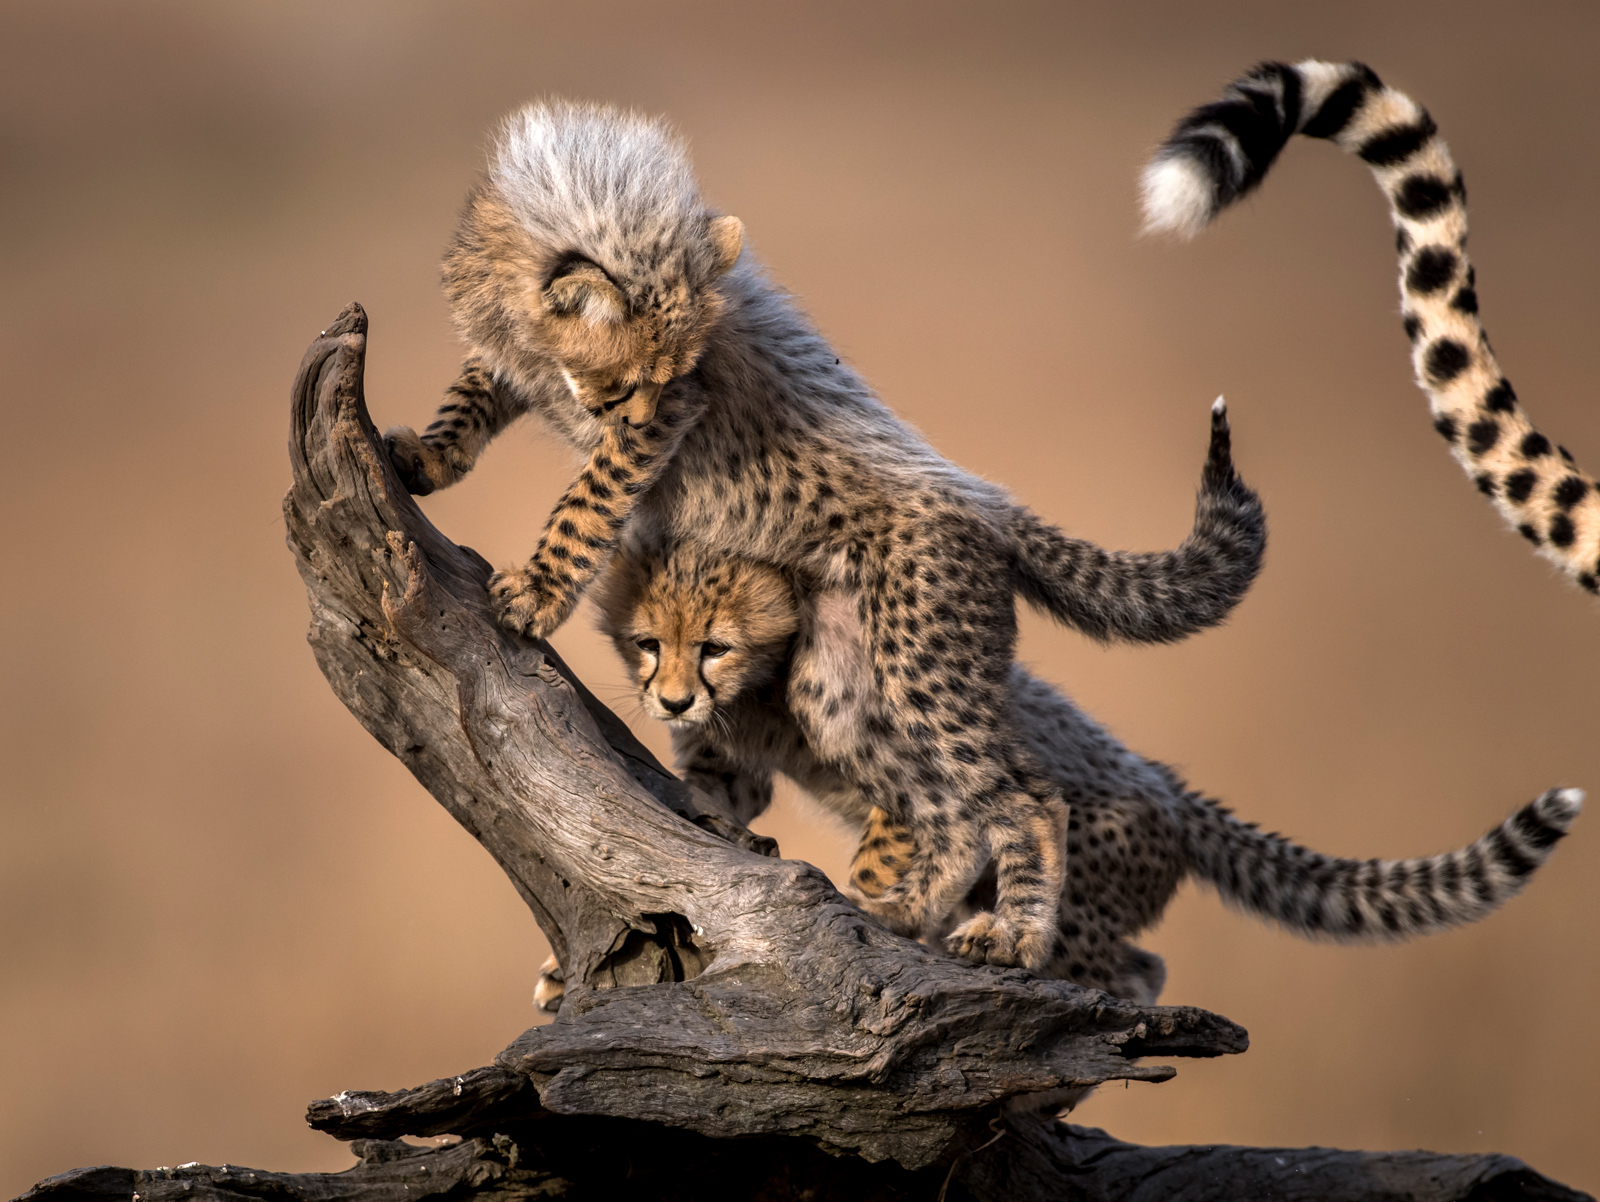 Cheetah cubs playing © Paolo Torchio